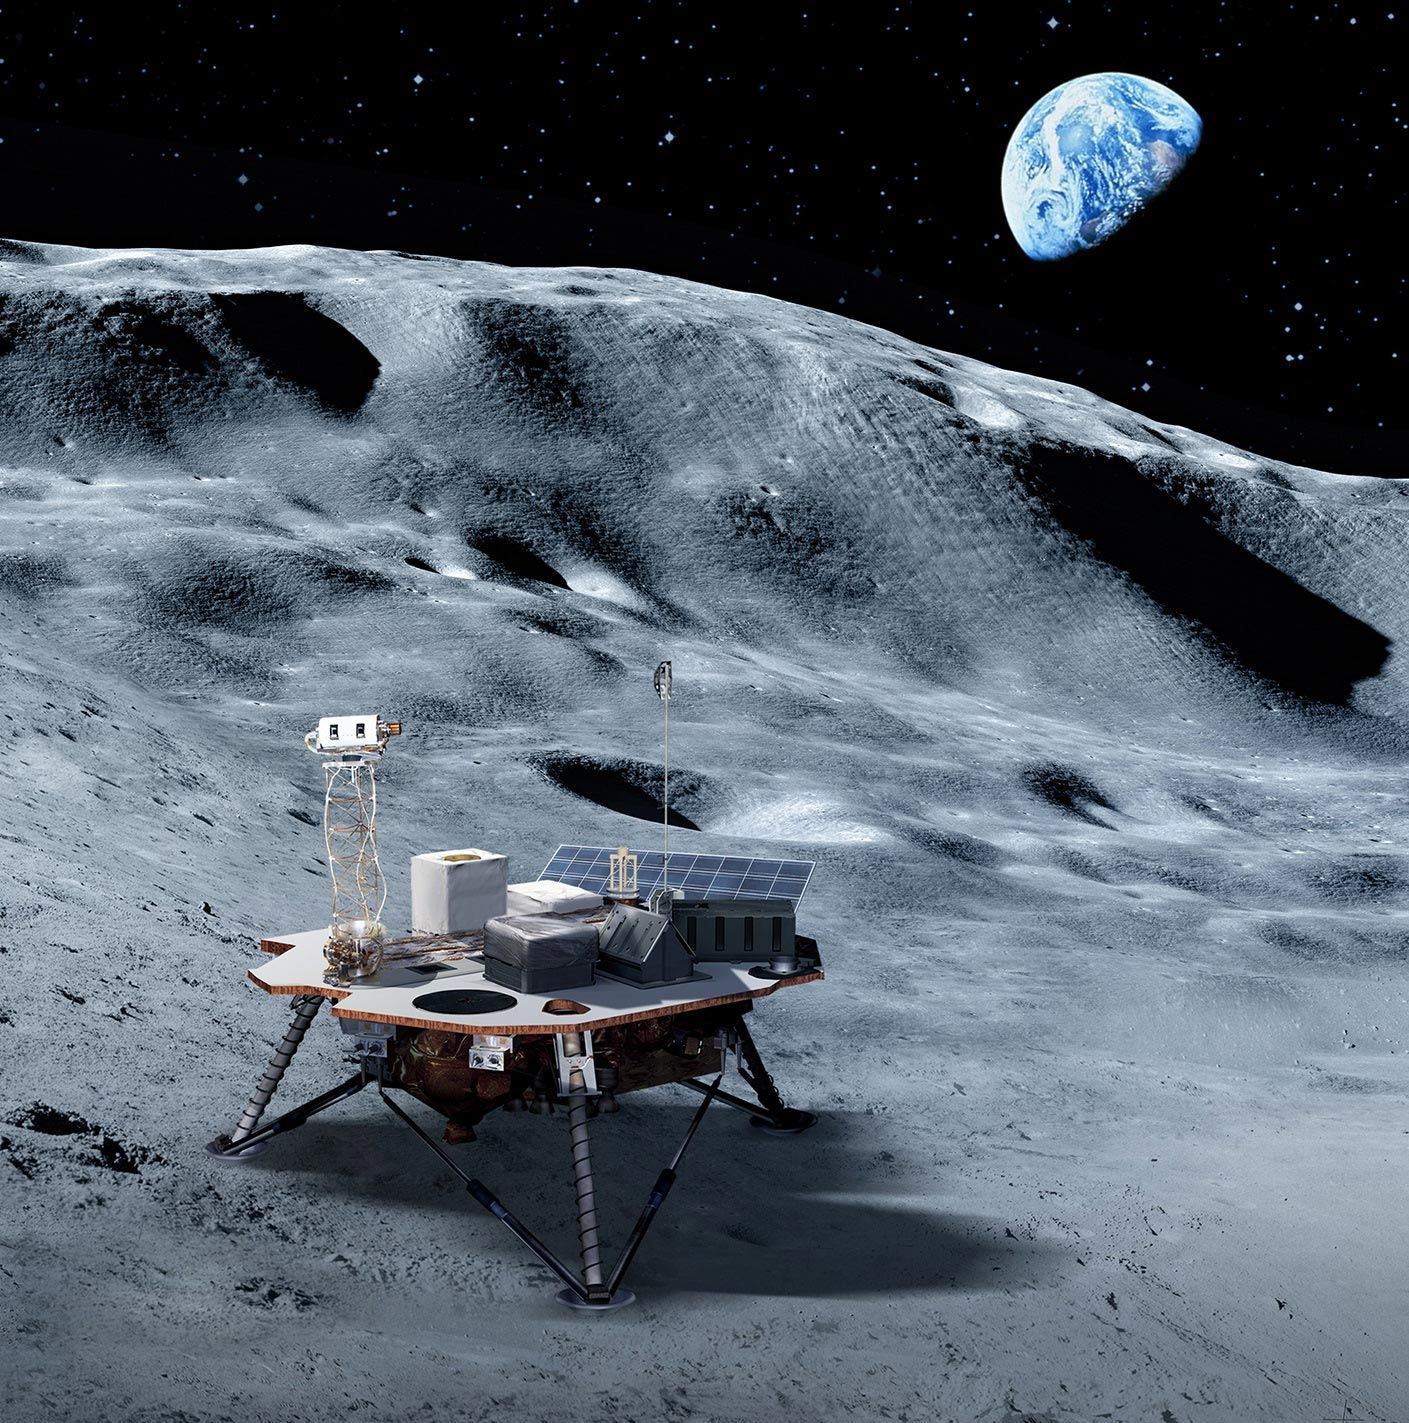 NASA Lunar Payloads: New Science Investigations for the Dark Side of the Moon - SciTechDaily